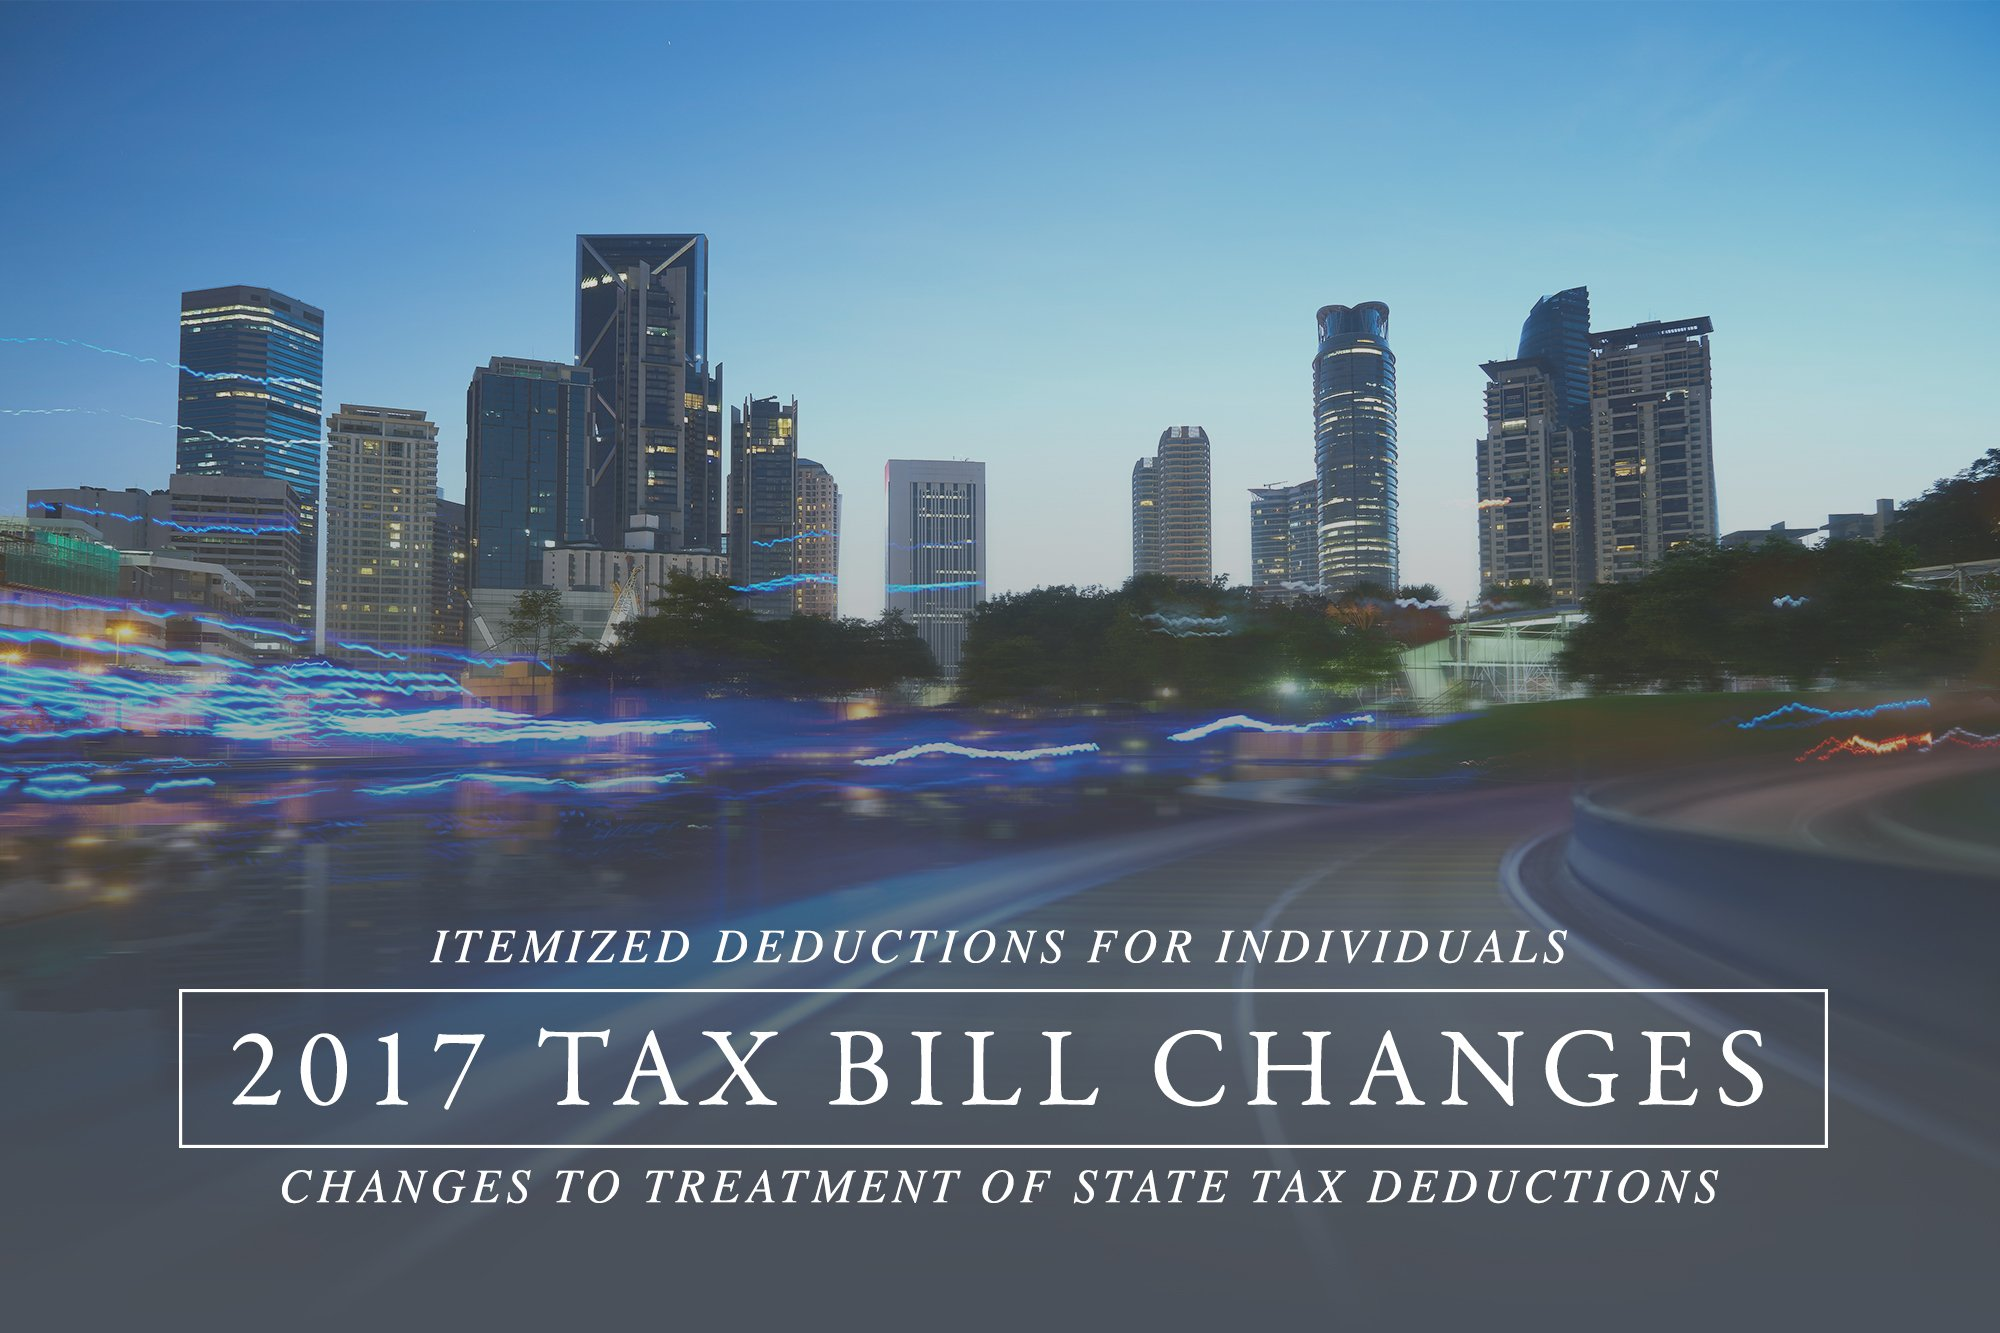 State tax deductions